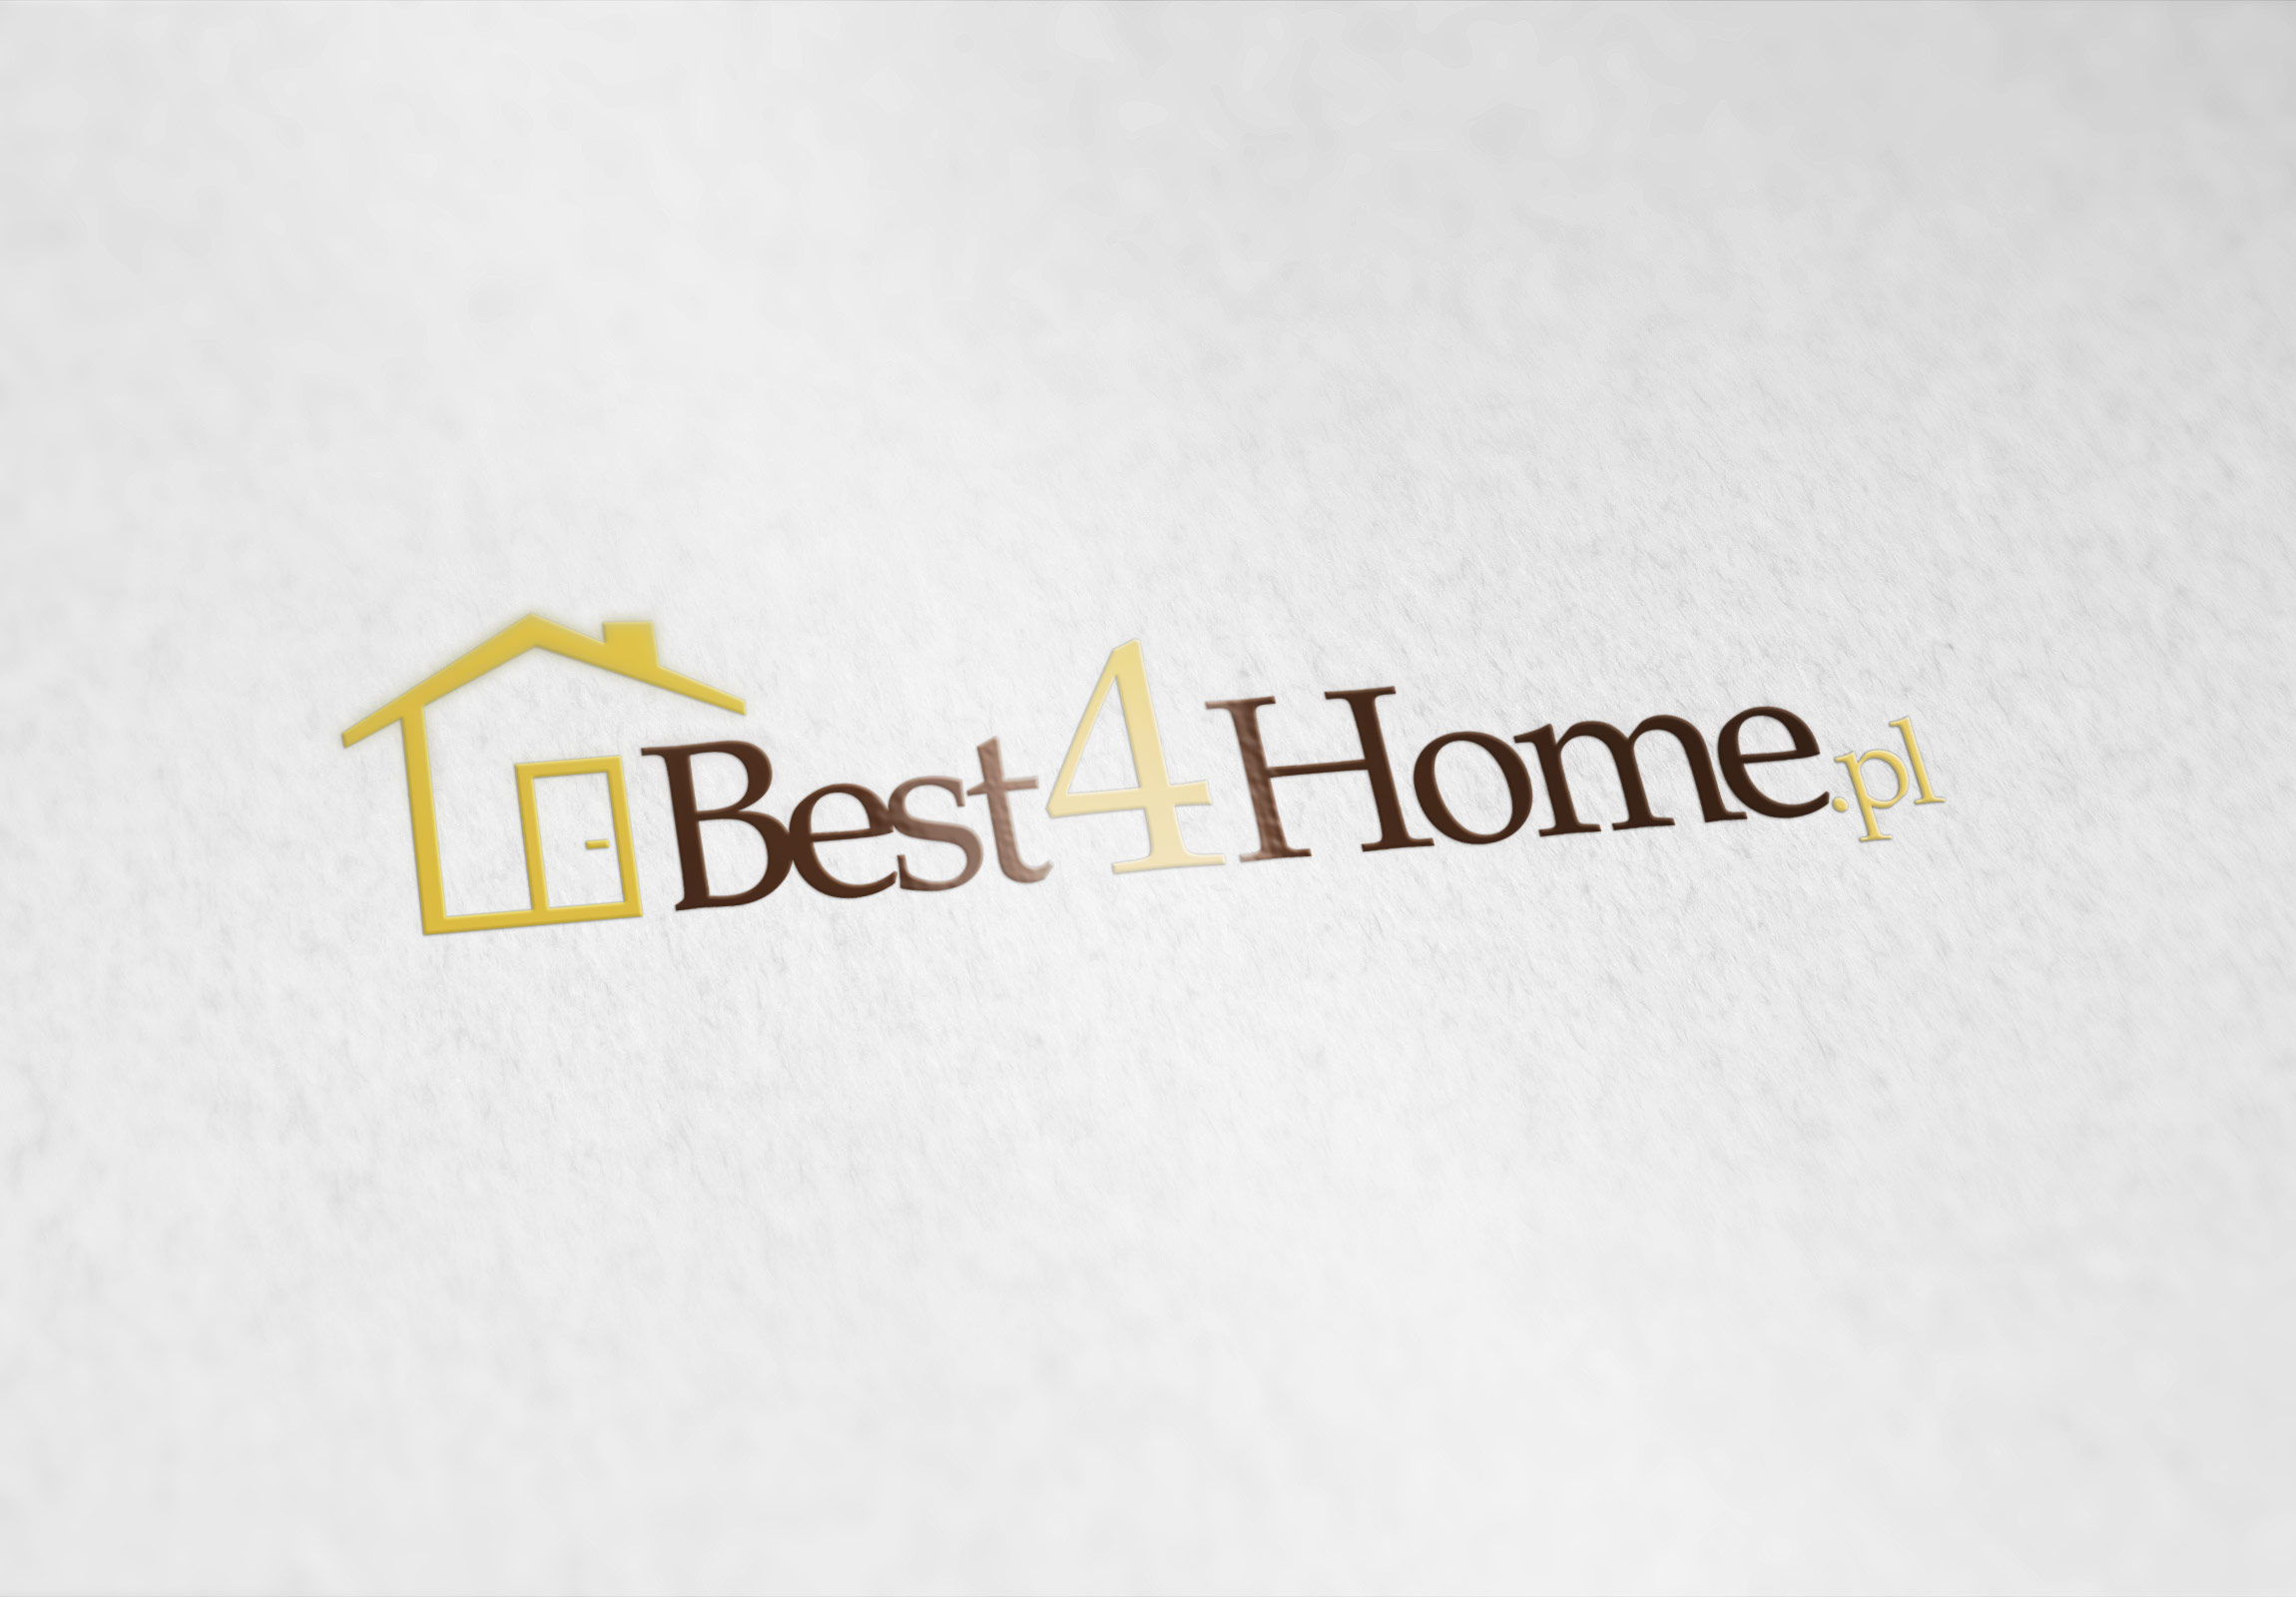 best4home-logo-mockup1